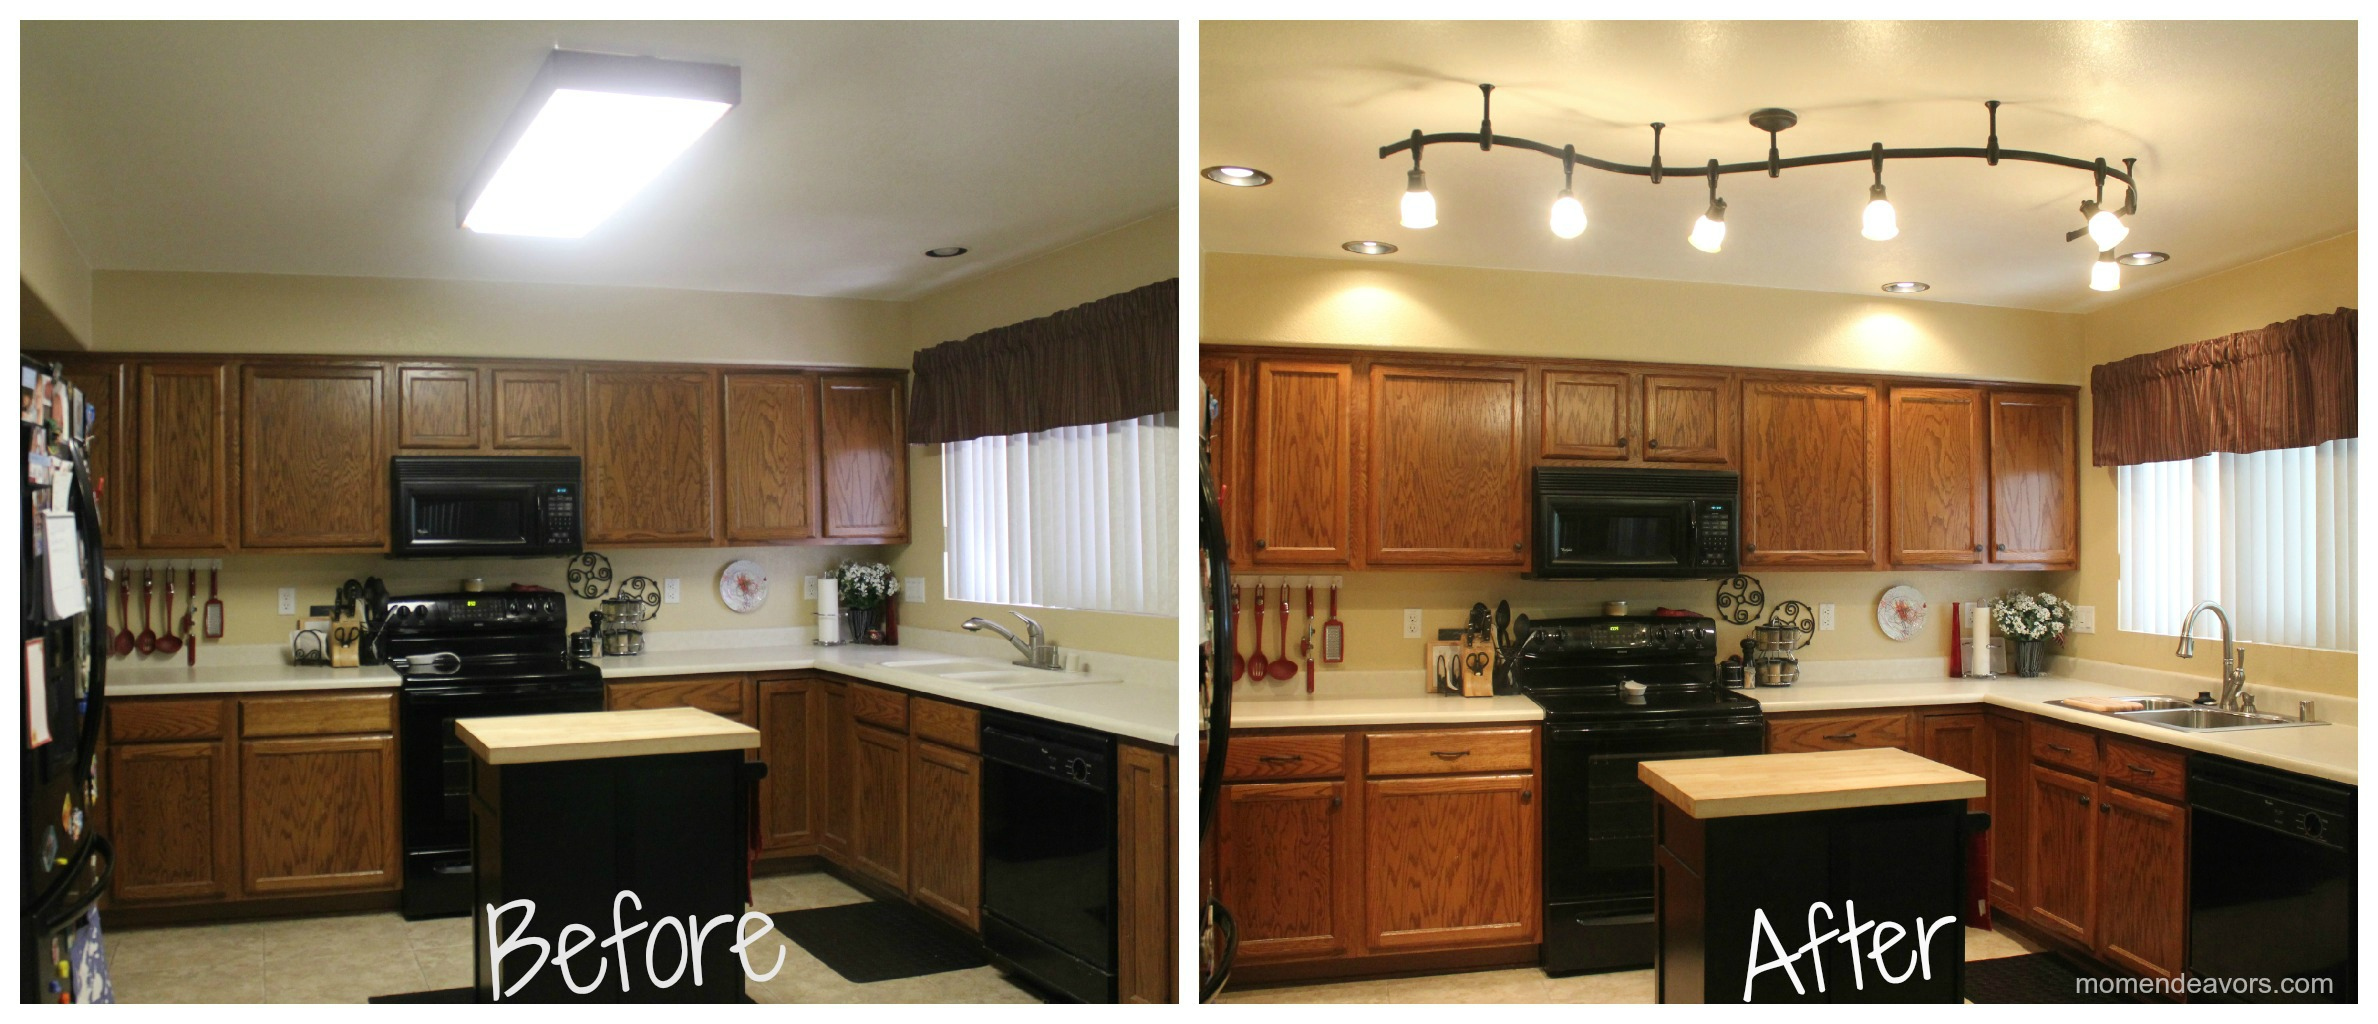 Recessed Kitchen Lighting Mini Kitchen Remodel New Lighting Makes A World Of Difference